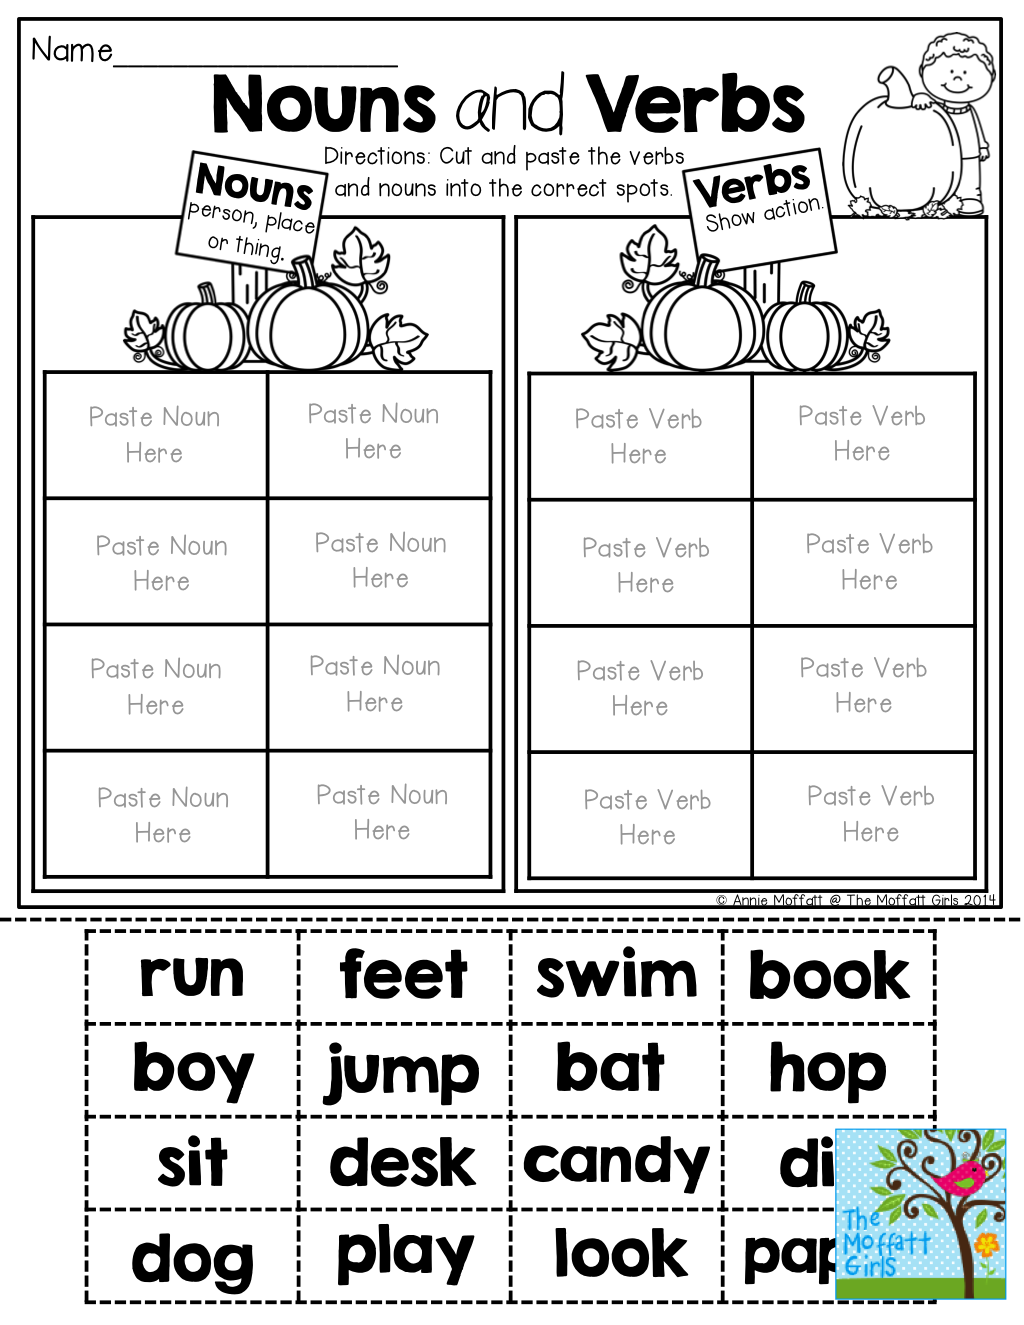 nouns and verbs sorting tons of fun printables write nouns verbs nouns verbs nouns. Black Bedroom Furniture Sets. Home Design Ideas